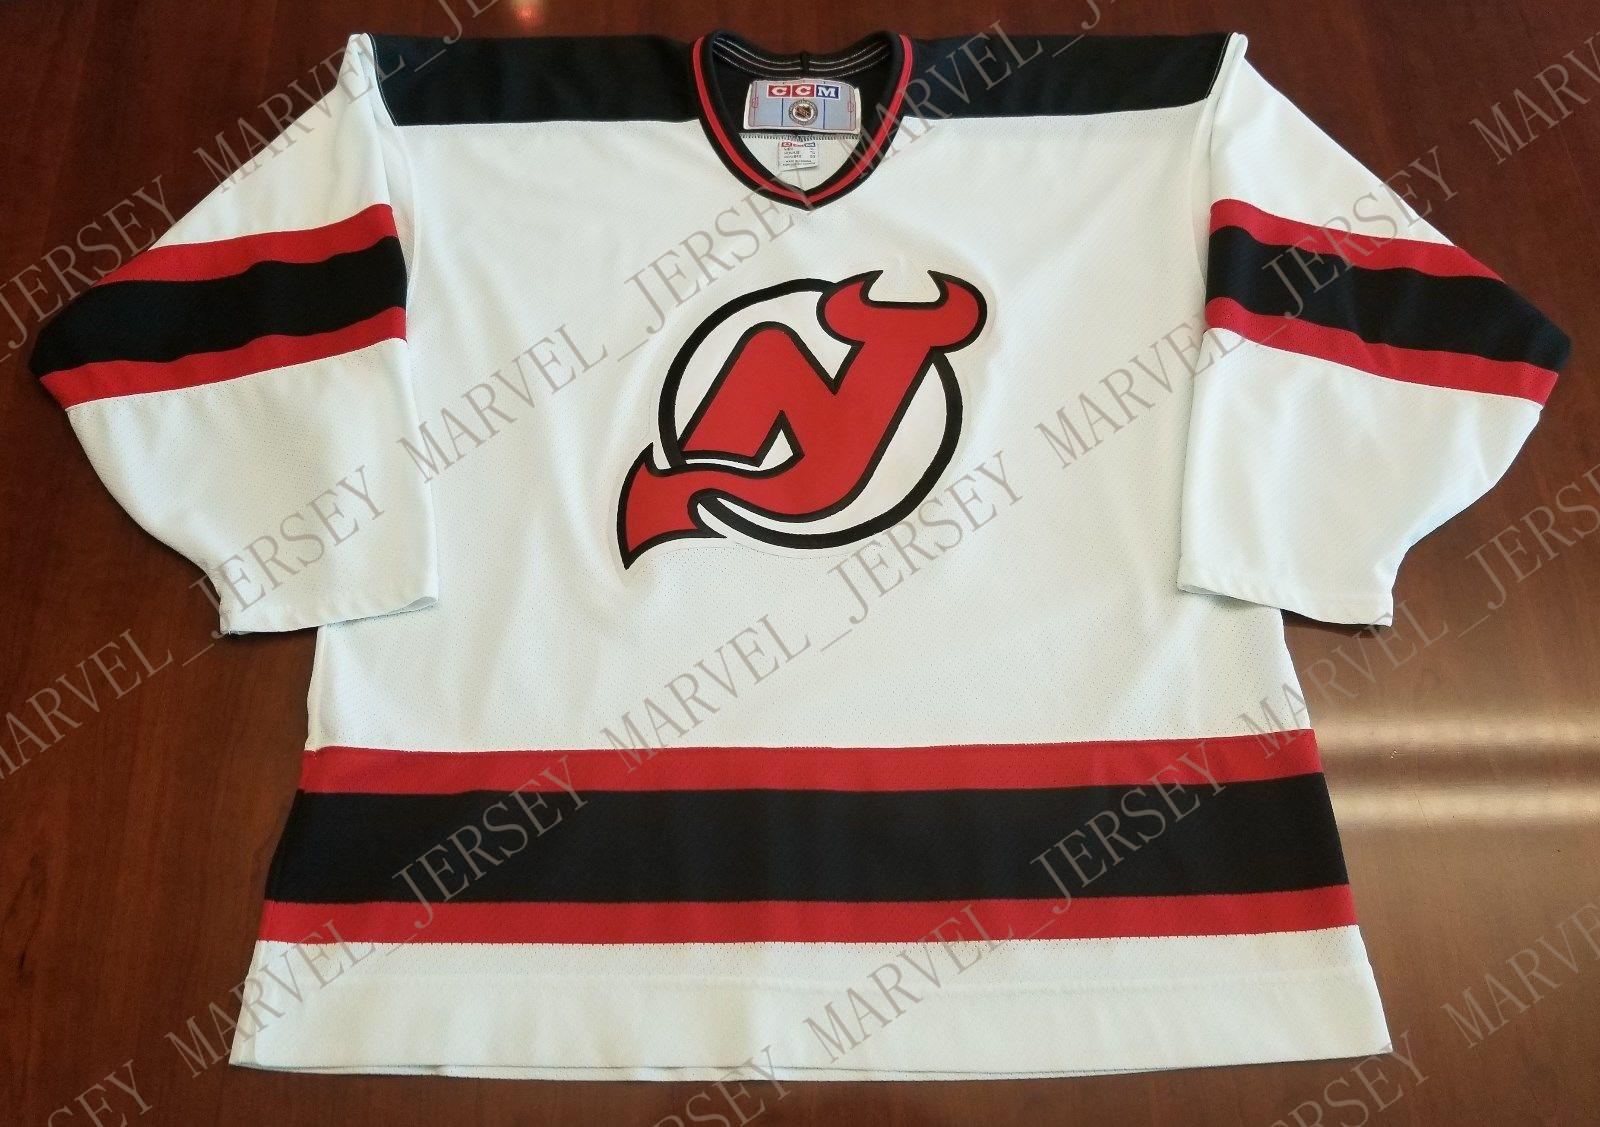 6b6af720b0d 2019 Cheap Custom New Jersey Devils Vintage CCM Jersey Stitched Retro  Hockey Jersey Customize Any Name Number XS 5XL From Marvel jersey